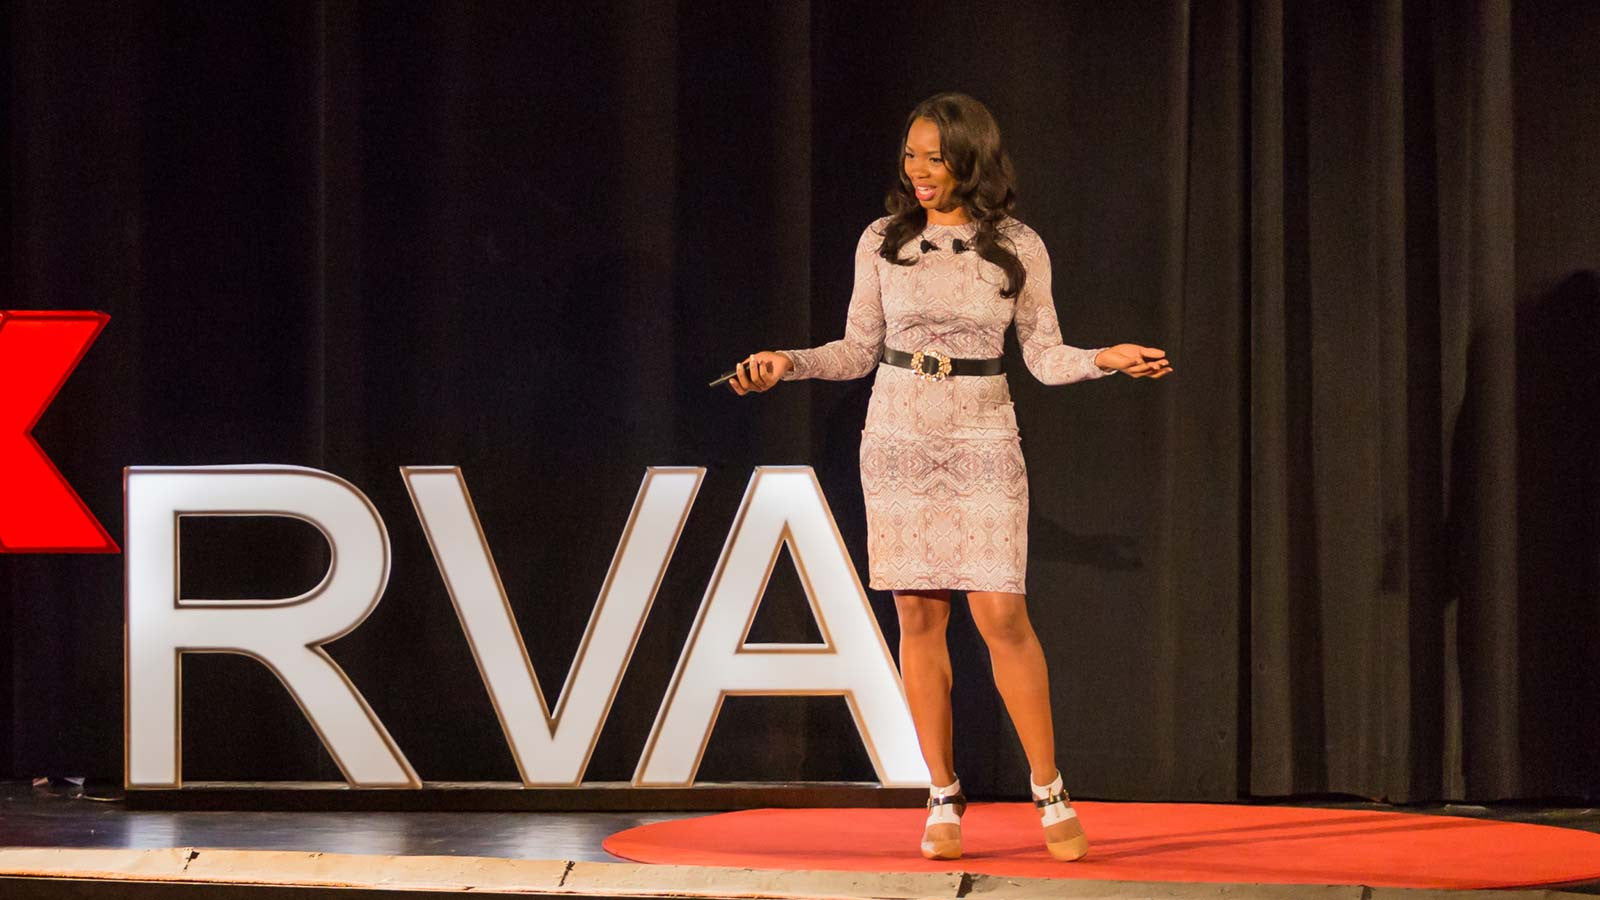 Shenova Circuitry Dress at Tedx with Keisha Howard